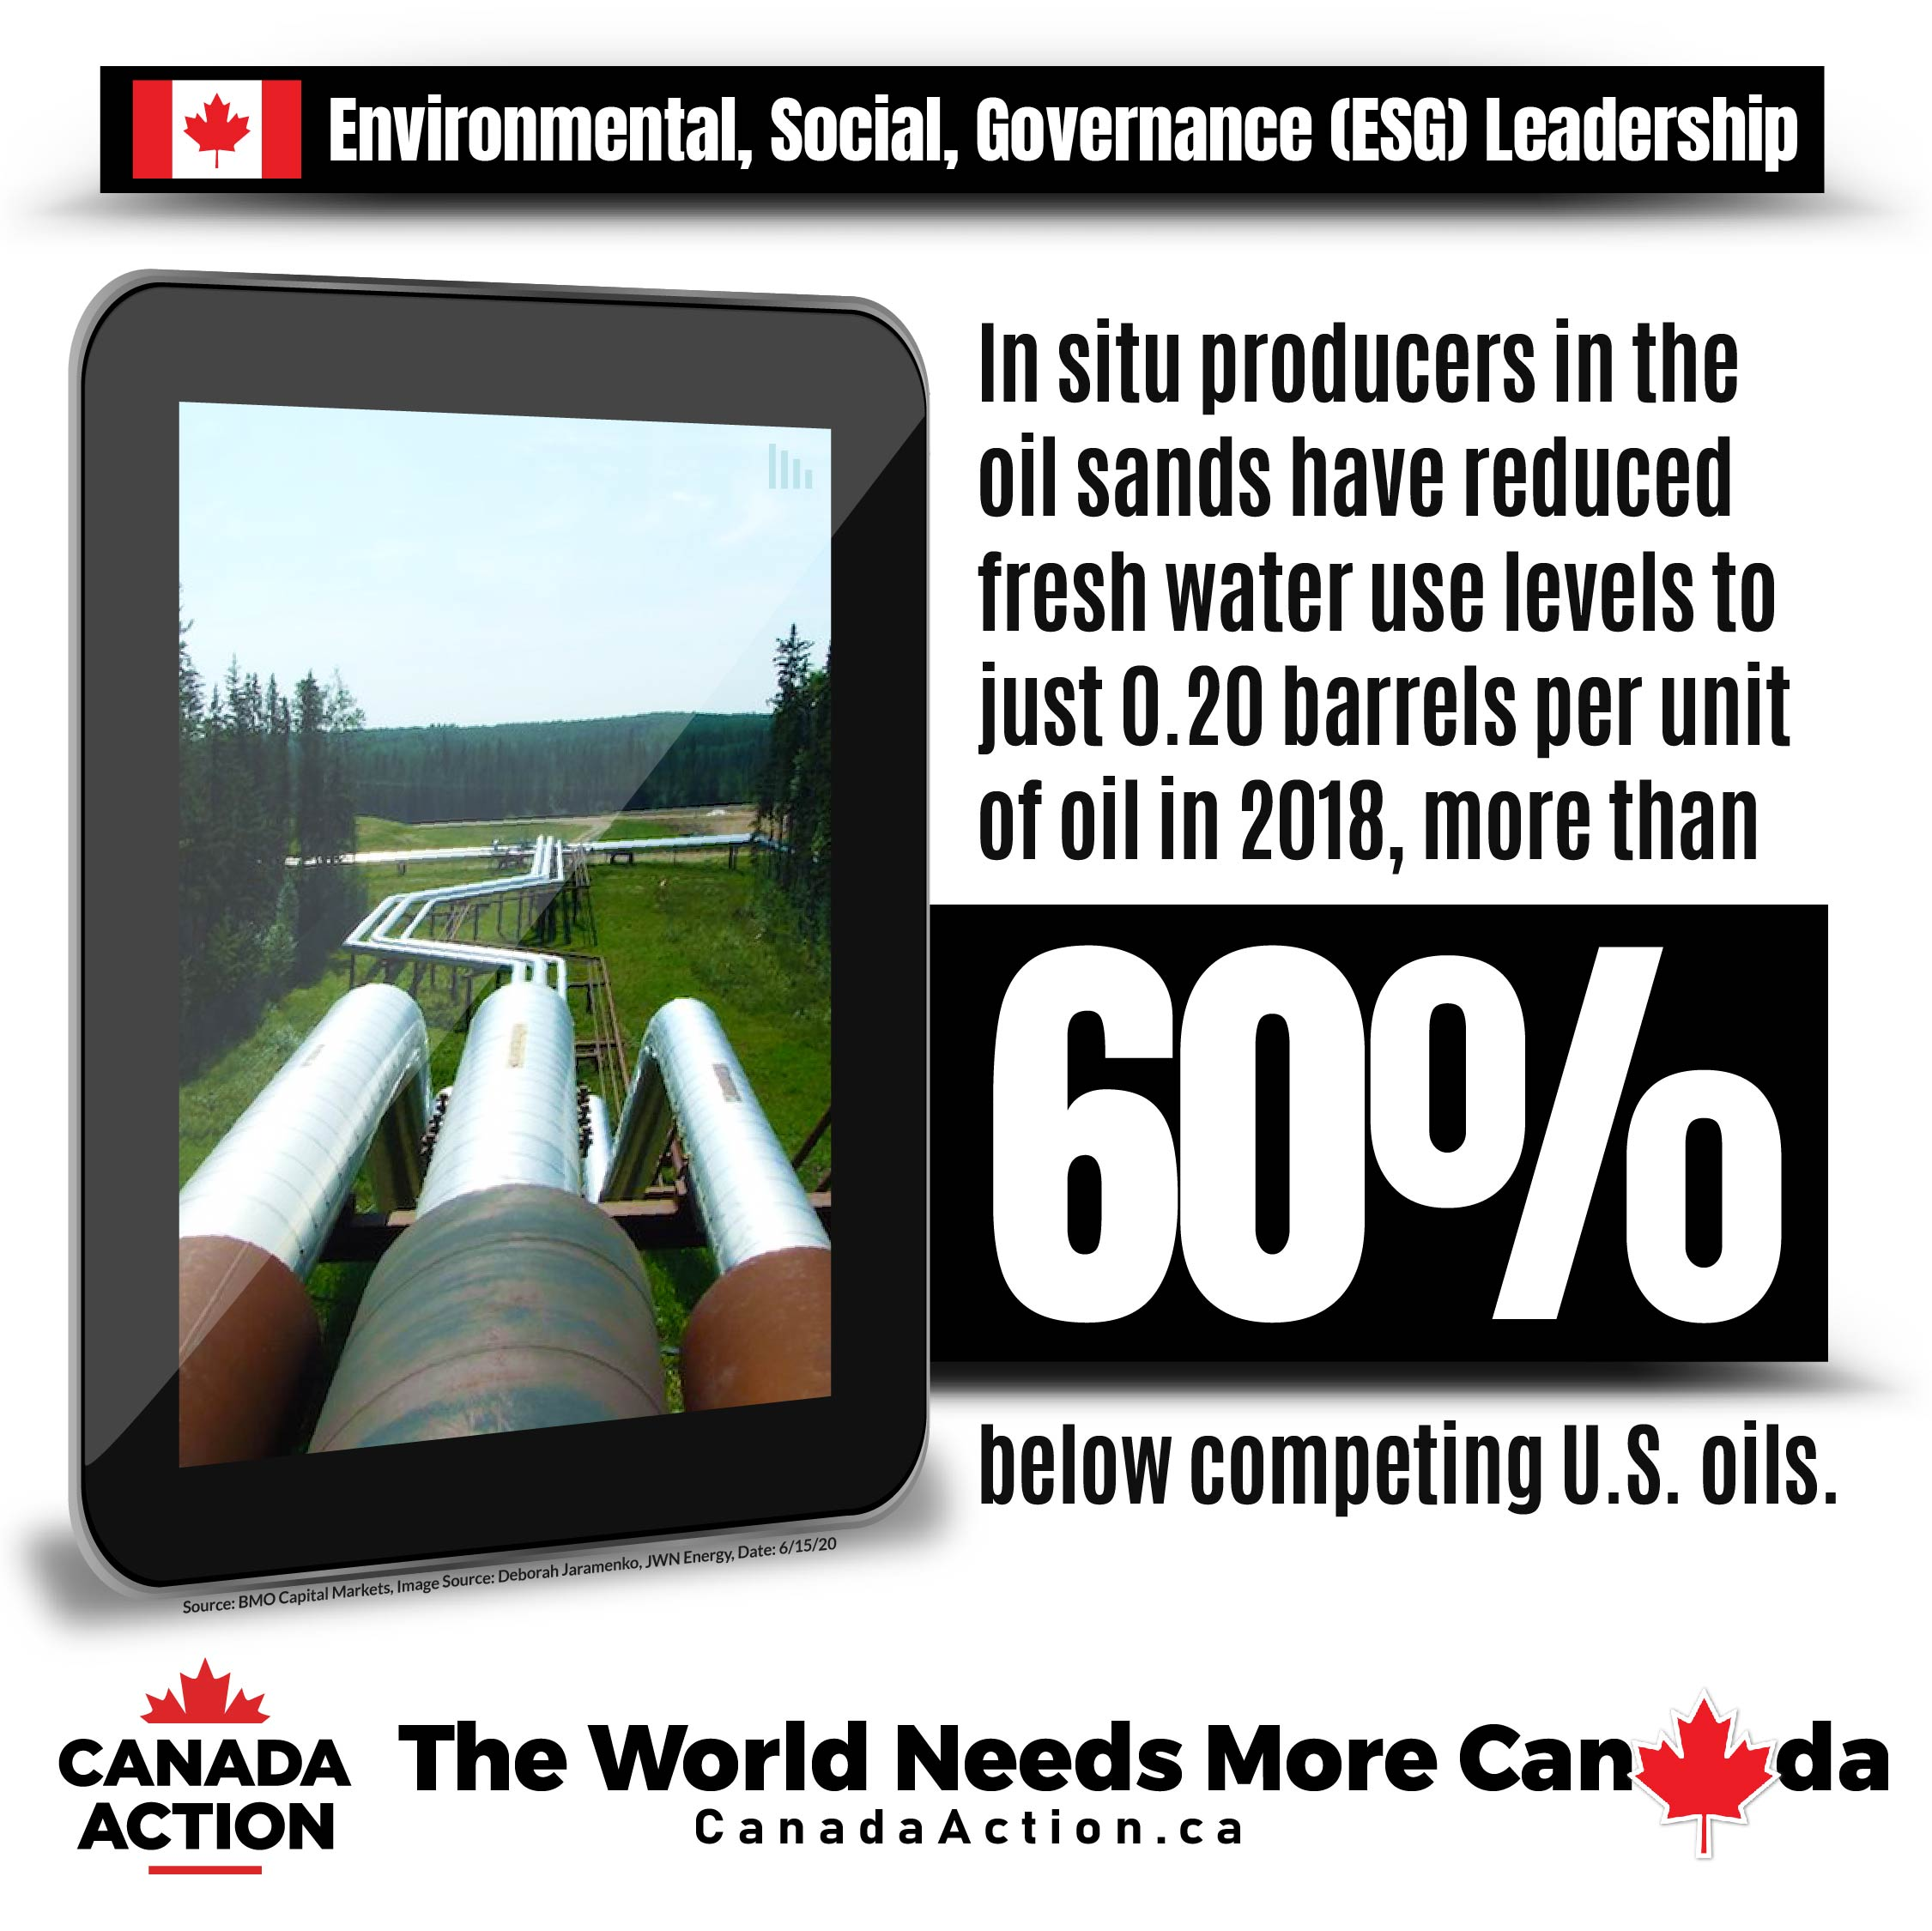 Canada oil sands producers use just 0.2 barrels of fresh water per unit of oil in 2018, 60% lower vs. competing USA oils